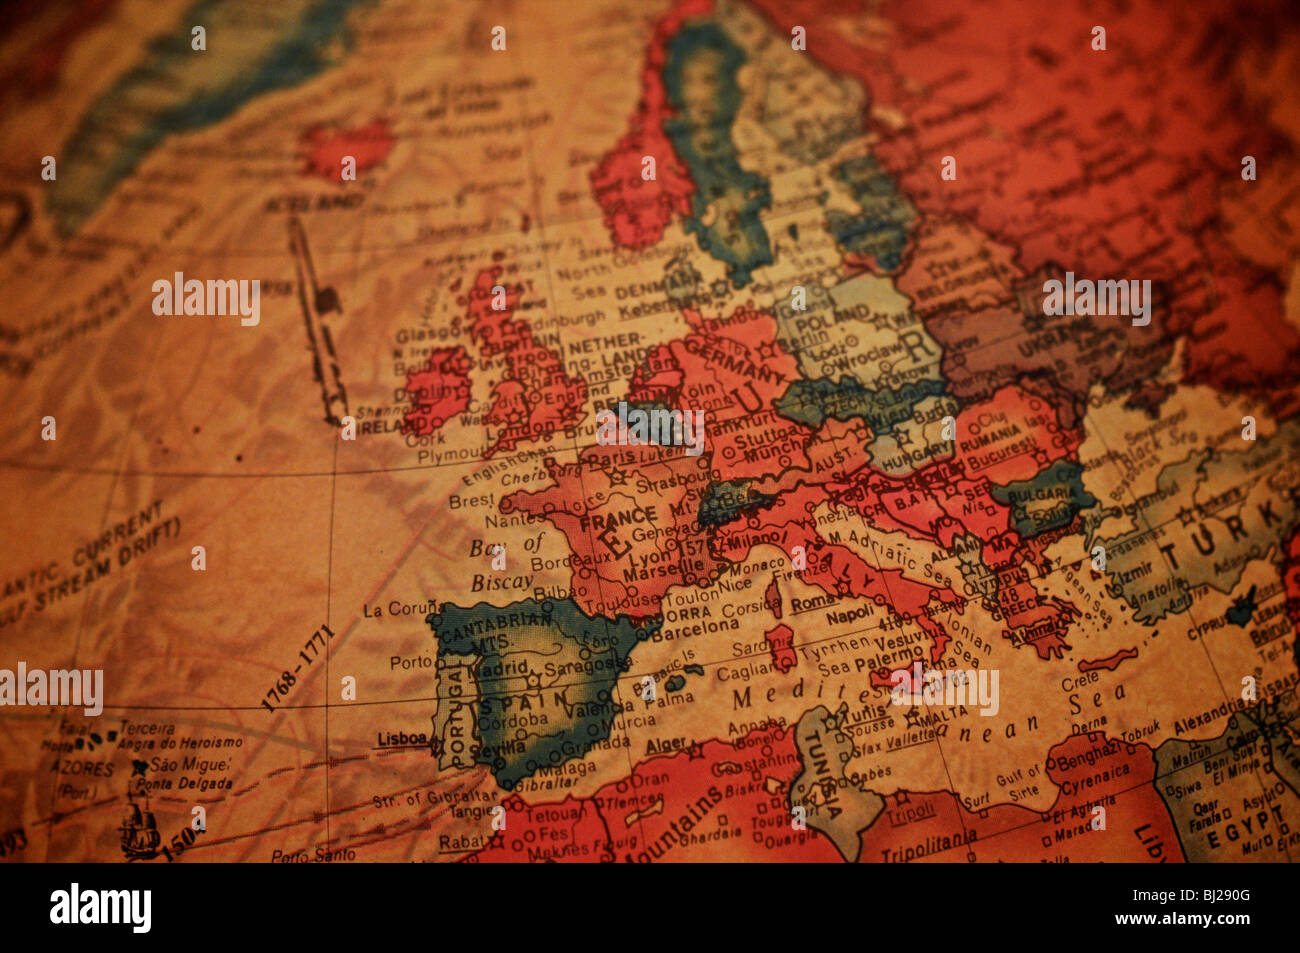 A detail photo of the world as depicted on an antique globe. Focusing on Europe. - Stock Image